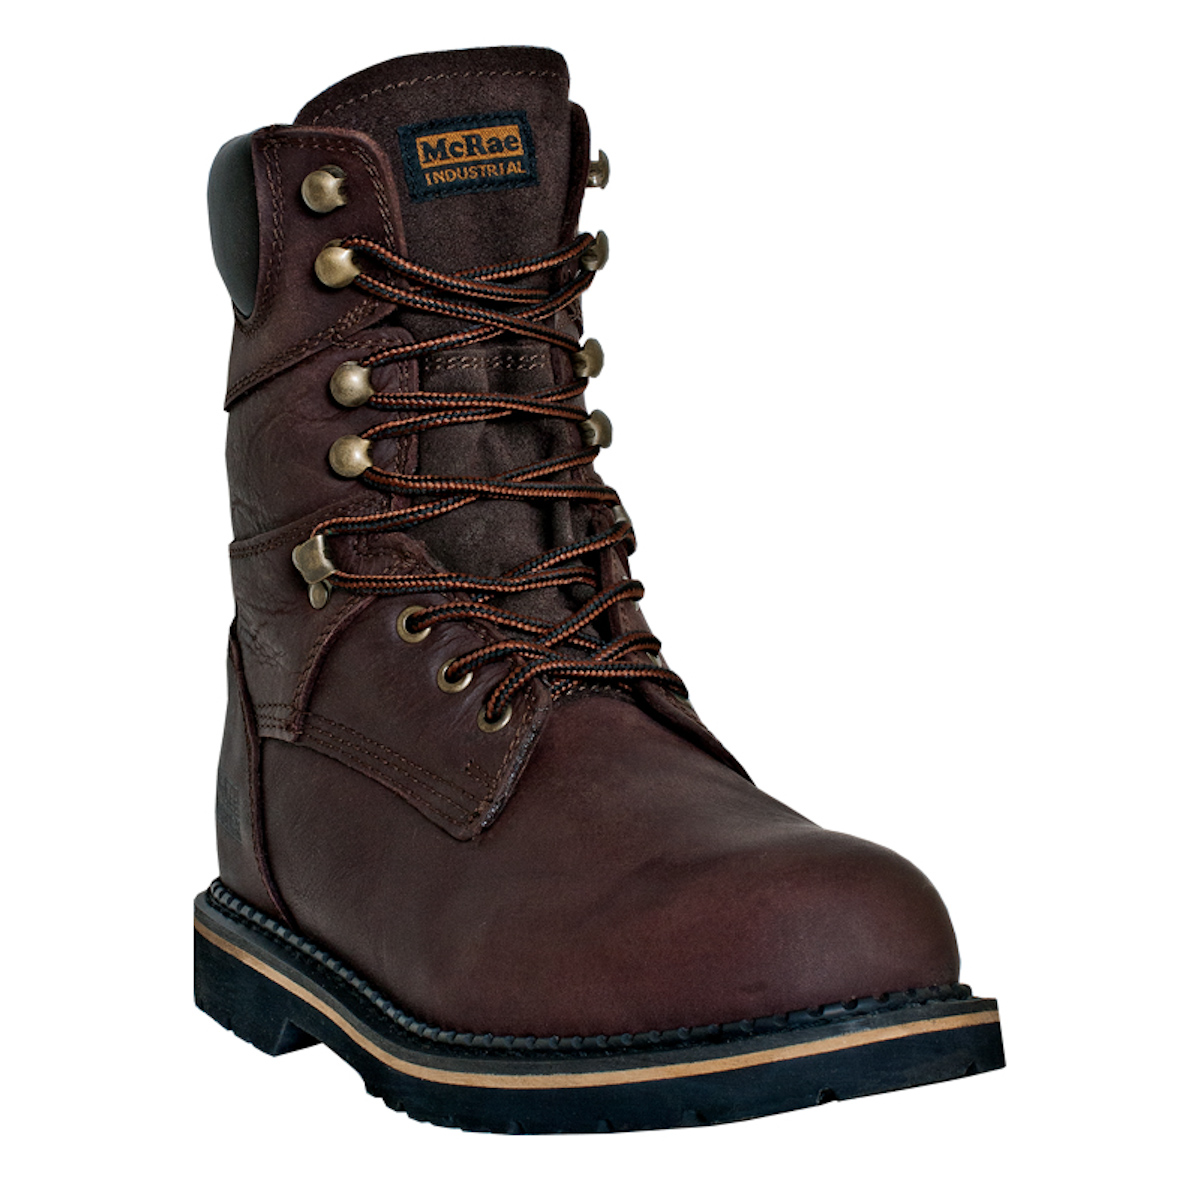 mcrae industrial mens brown leather 8in lace up soft toe